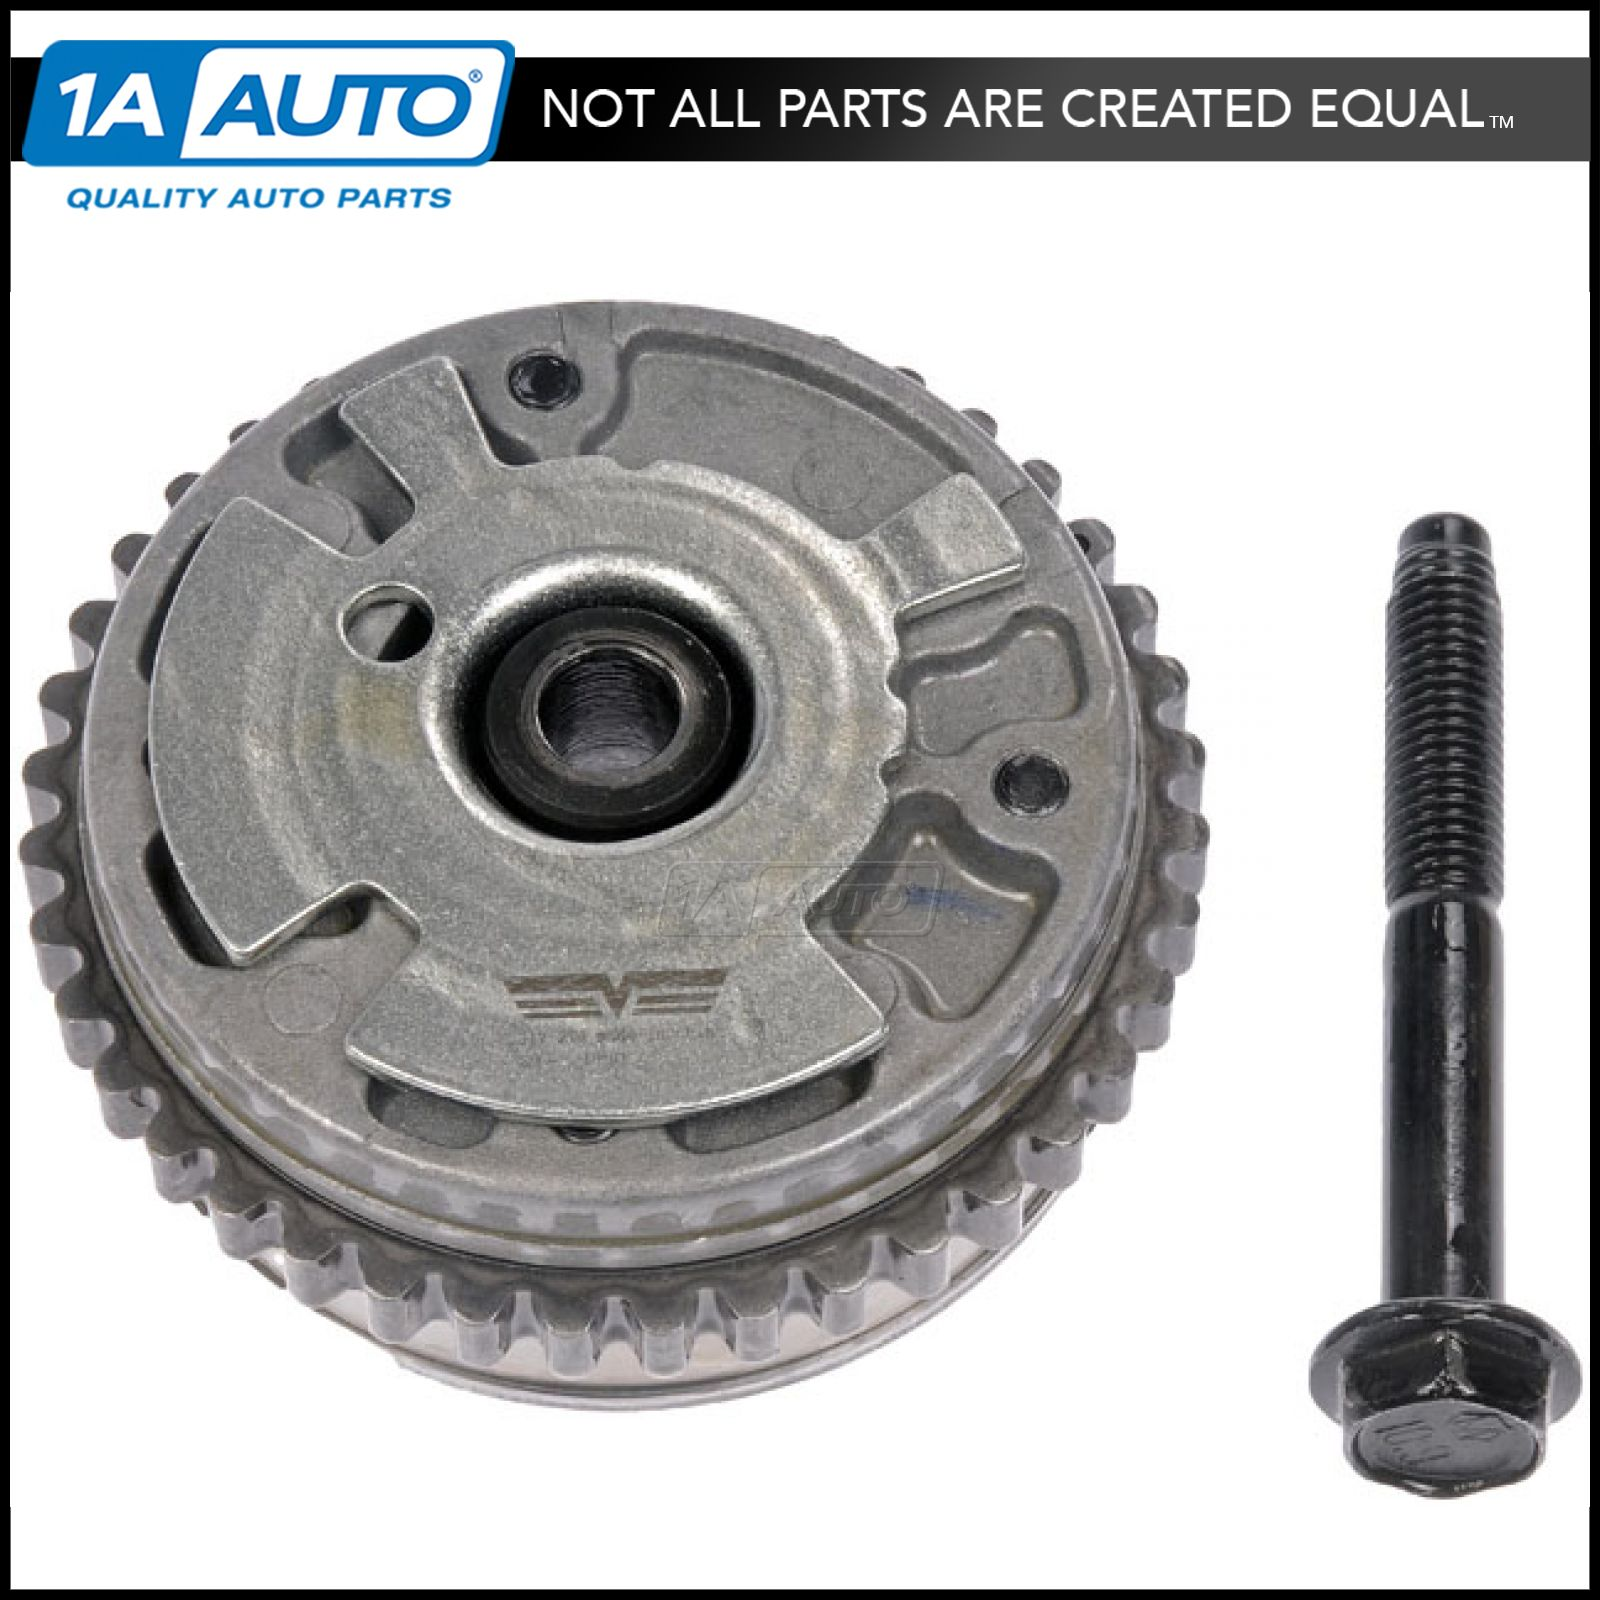 Dorman Camshaft Phaser Sprocket For Buick Cadillac Chevy